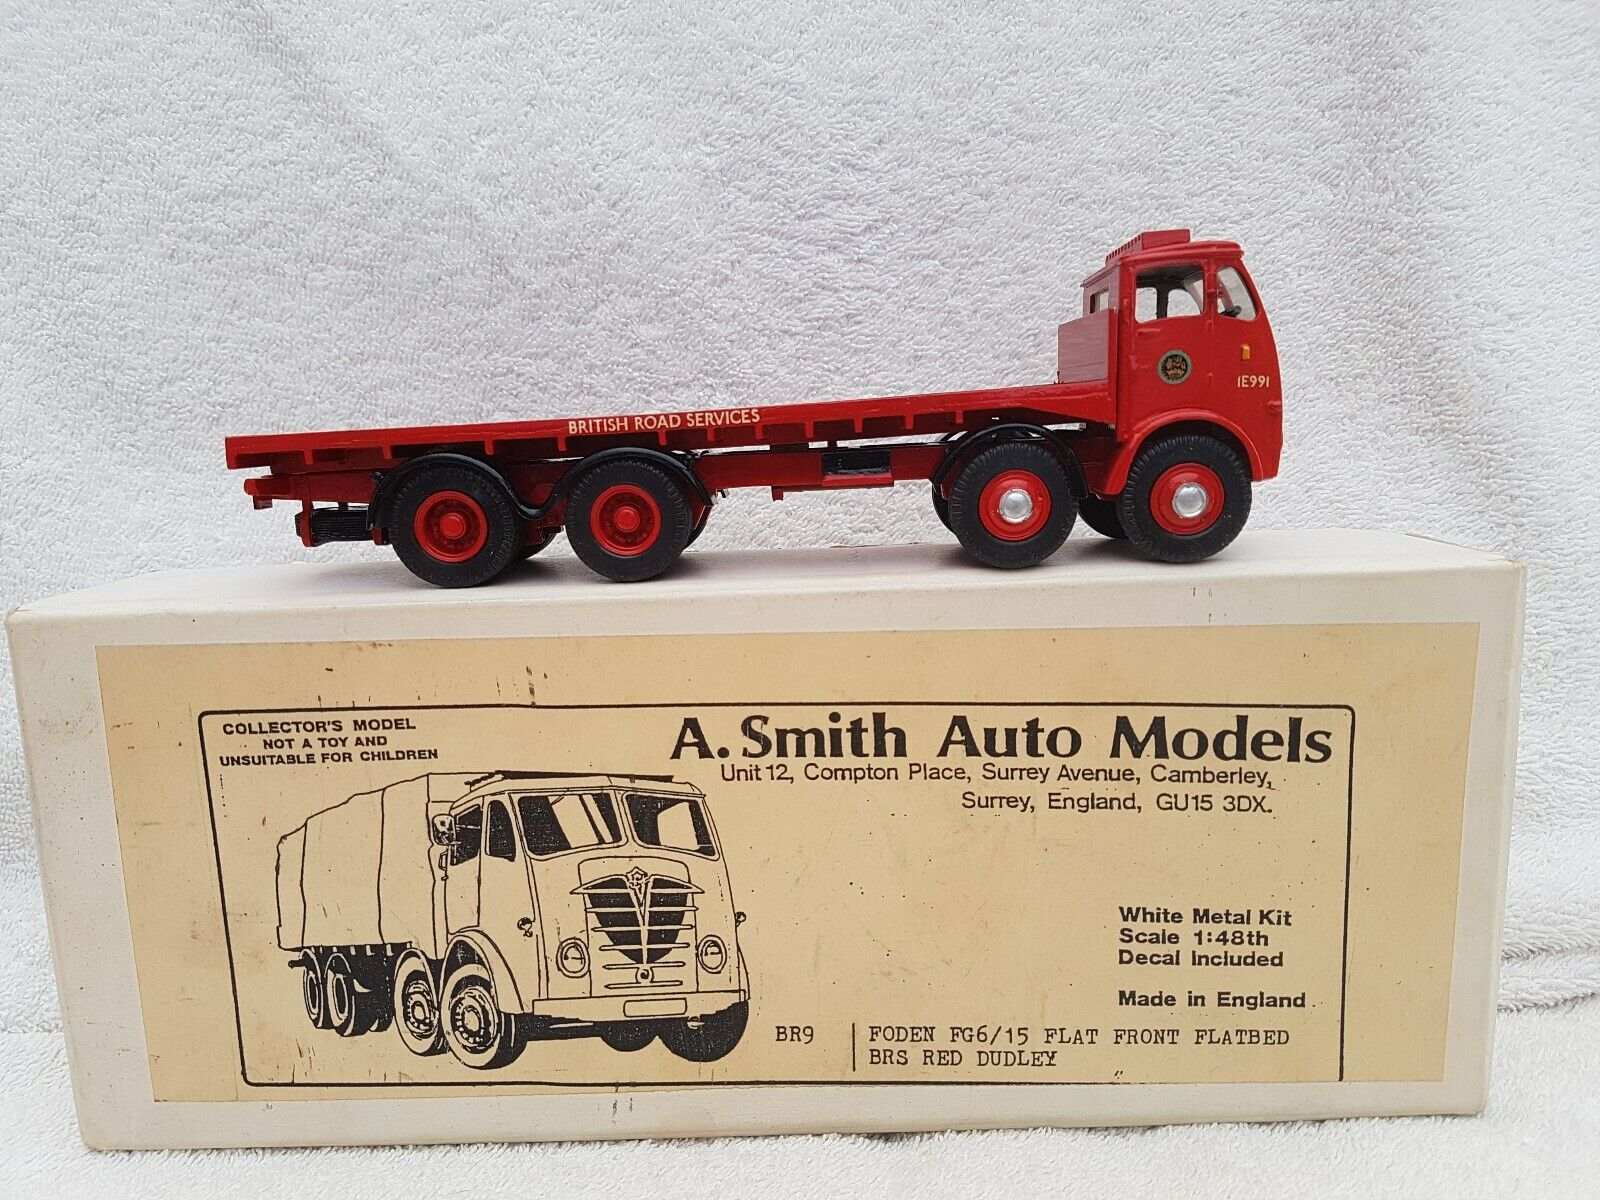 A. Smith Auto Models Foden FG6 15 Flat Front Flatbed BRS Red Dudley